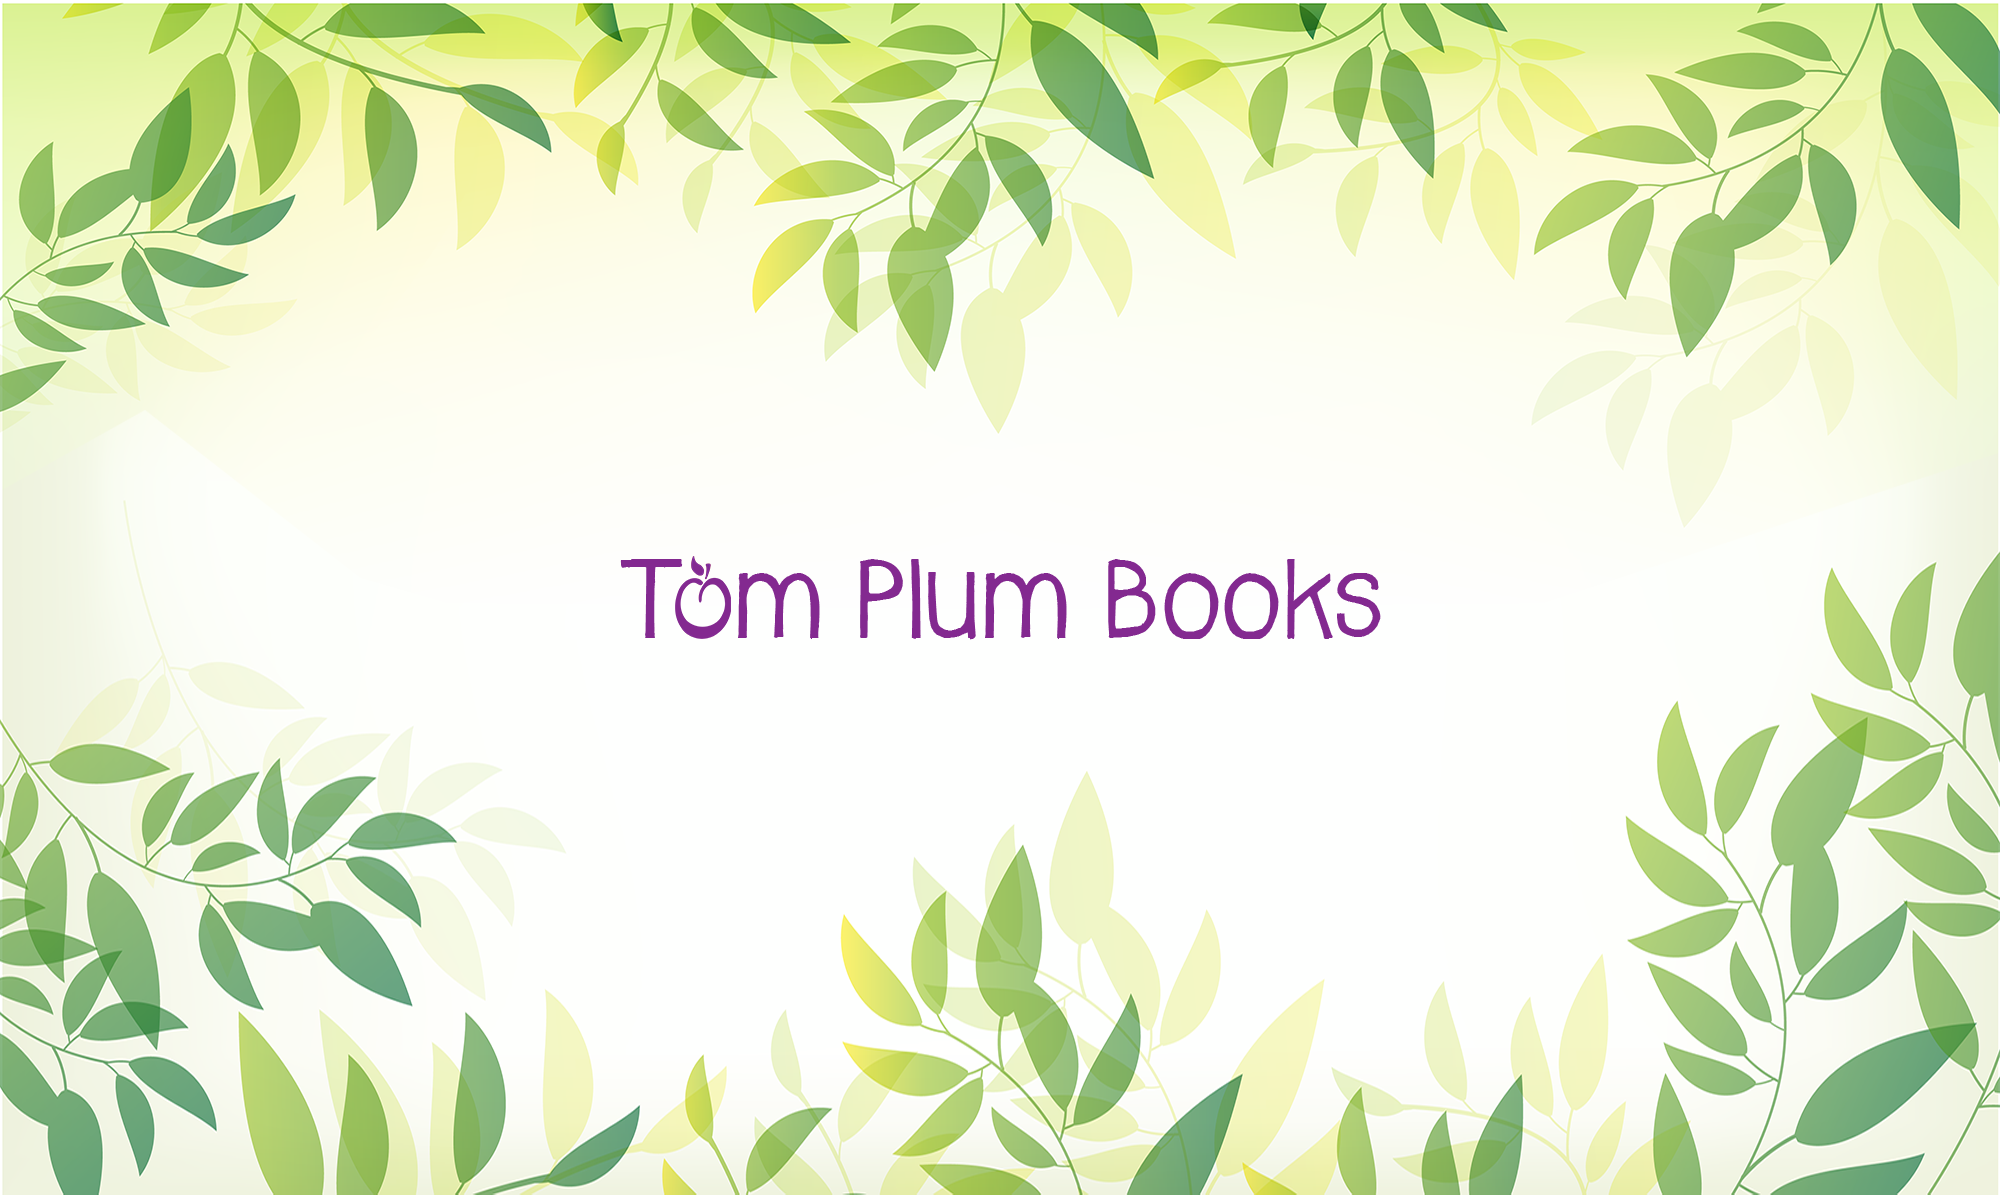 Tom Plum Books